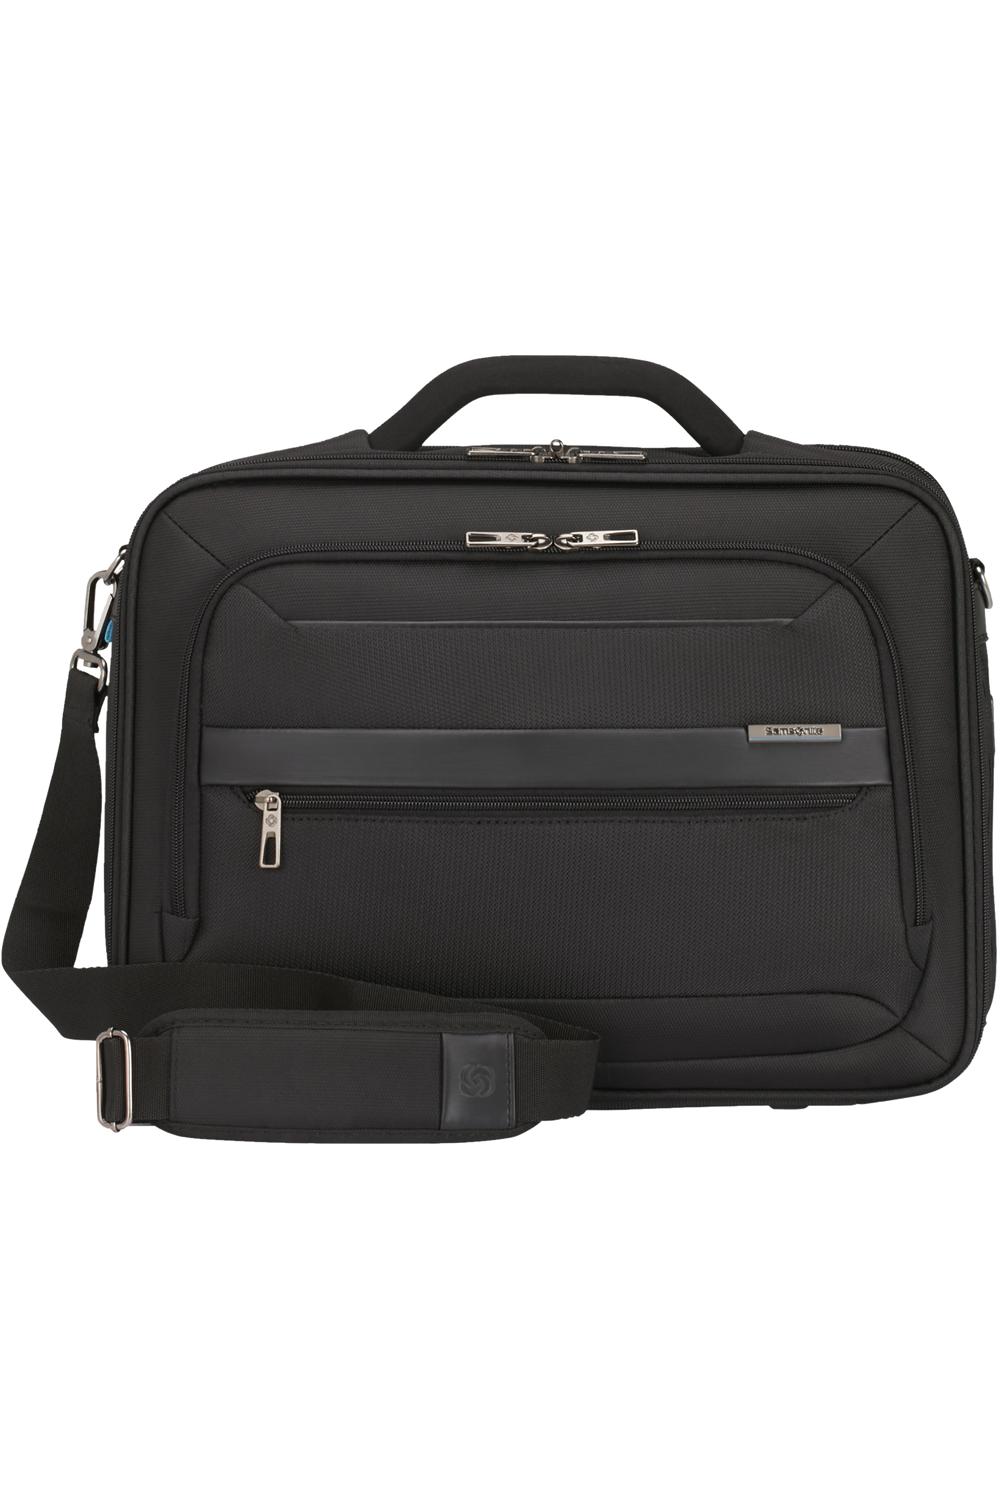 Samsonite Vectura Evo Teczka 15,6 Black